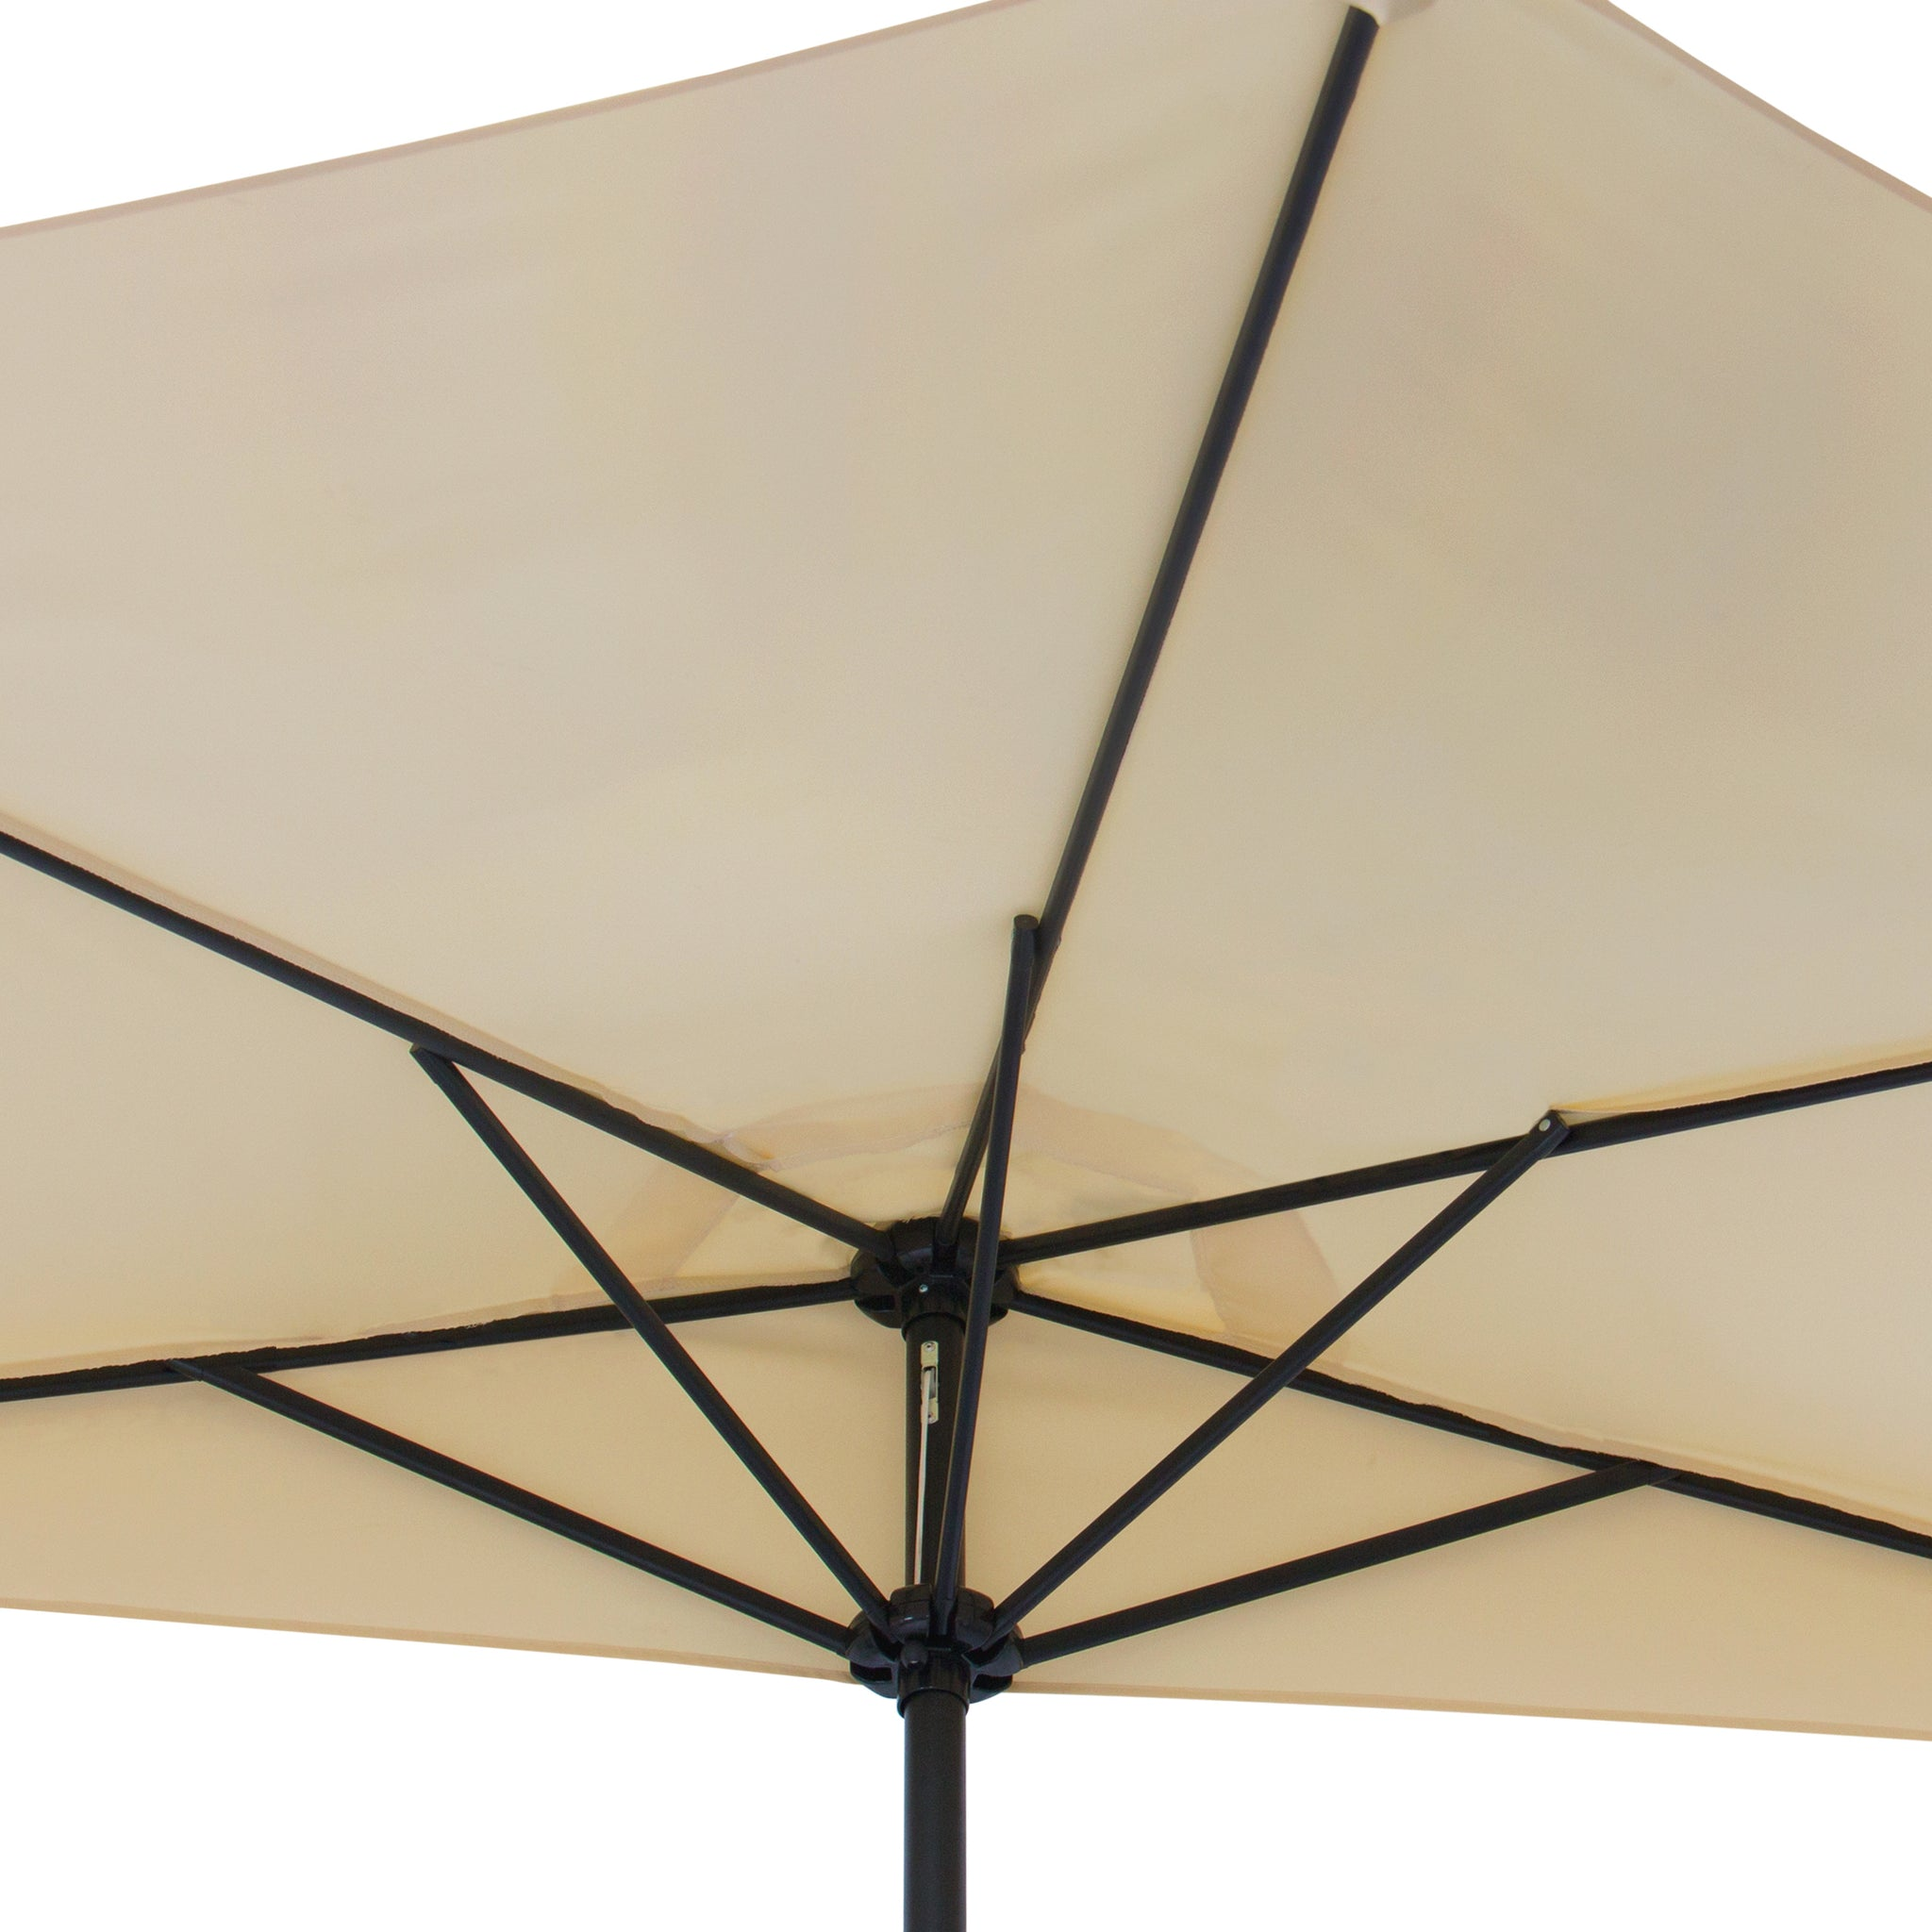 10ft Half Patio Umbrella w Umbrella Stand Beige – Best Choice